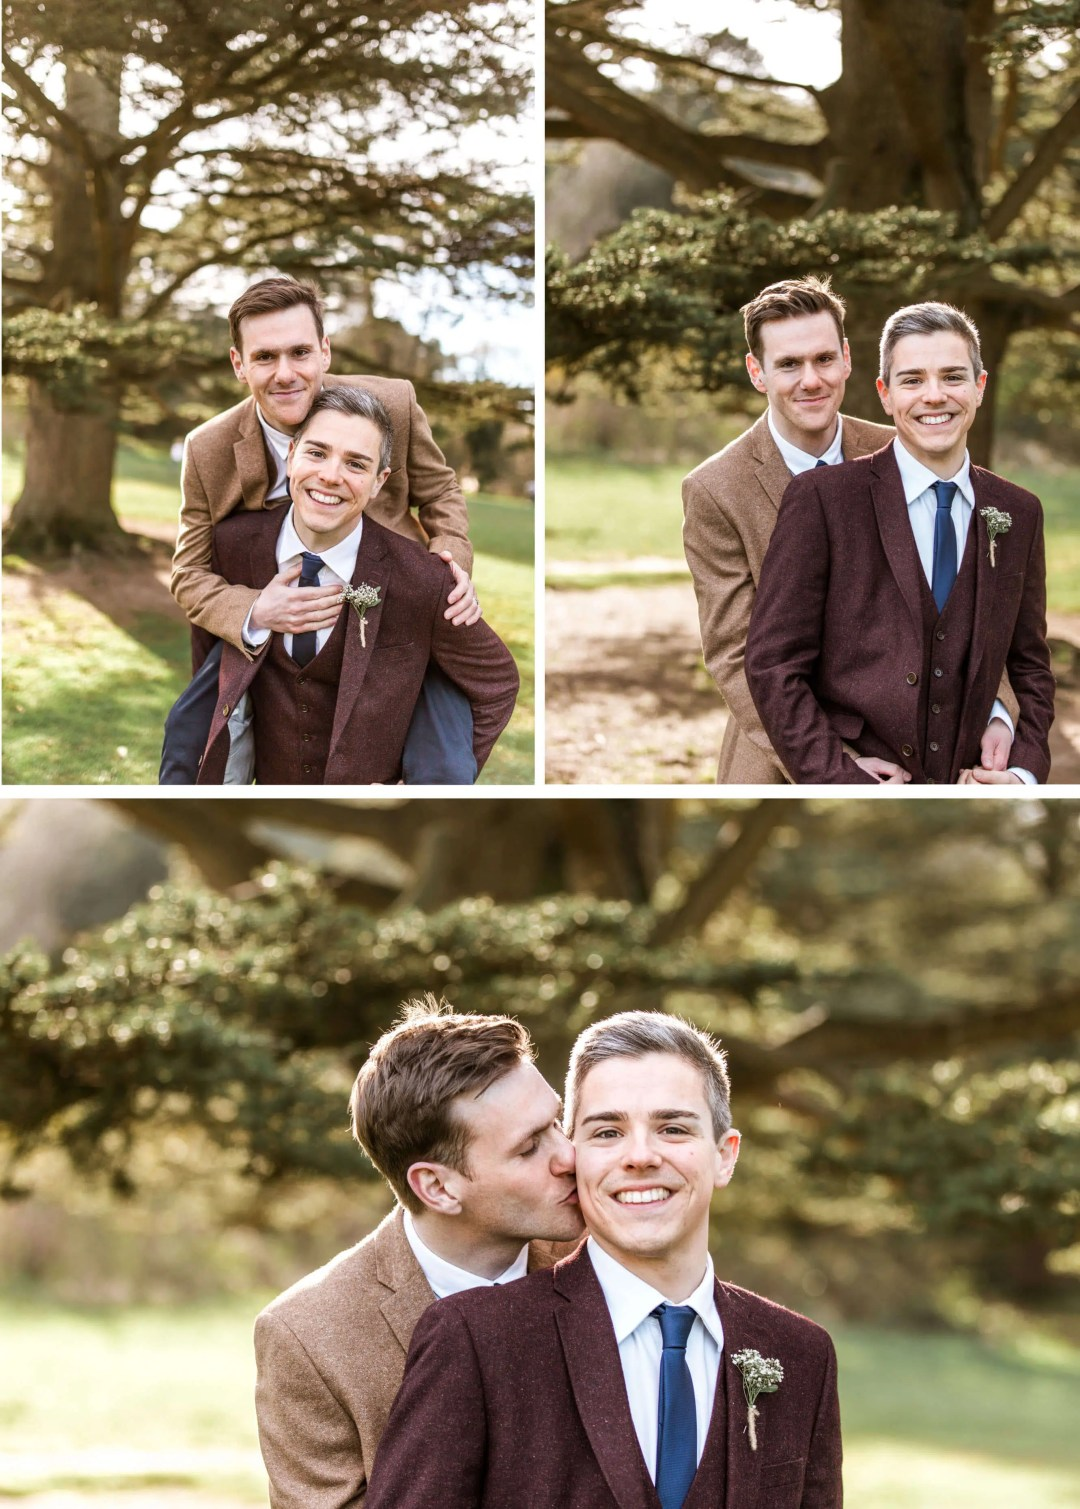 Stamner Park Wedding Photography Couple Portraits Same-Sex Brighton Photographer